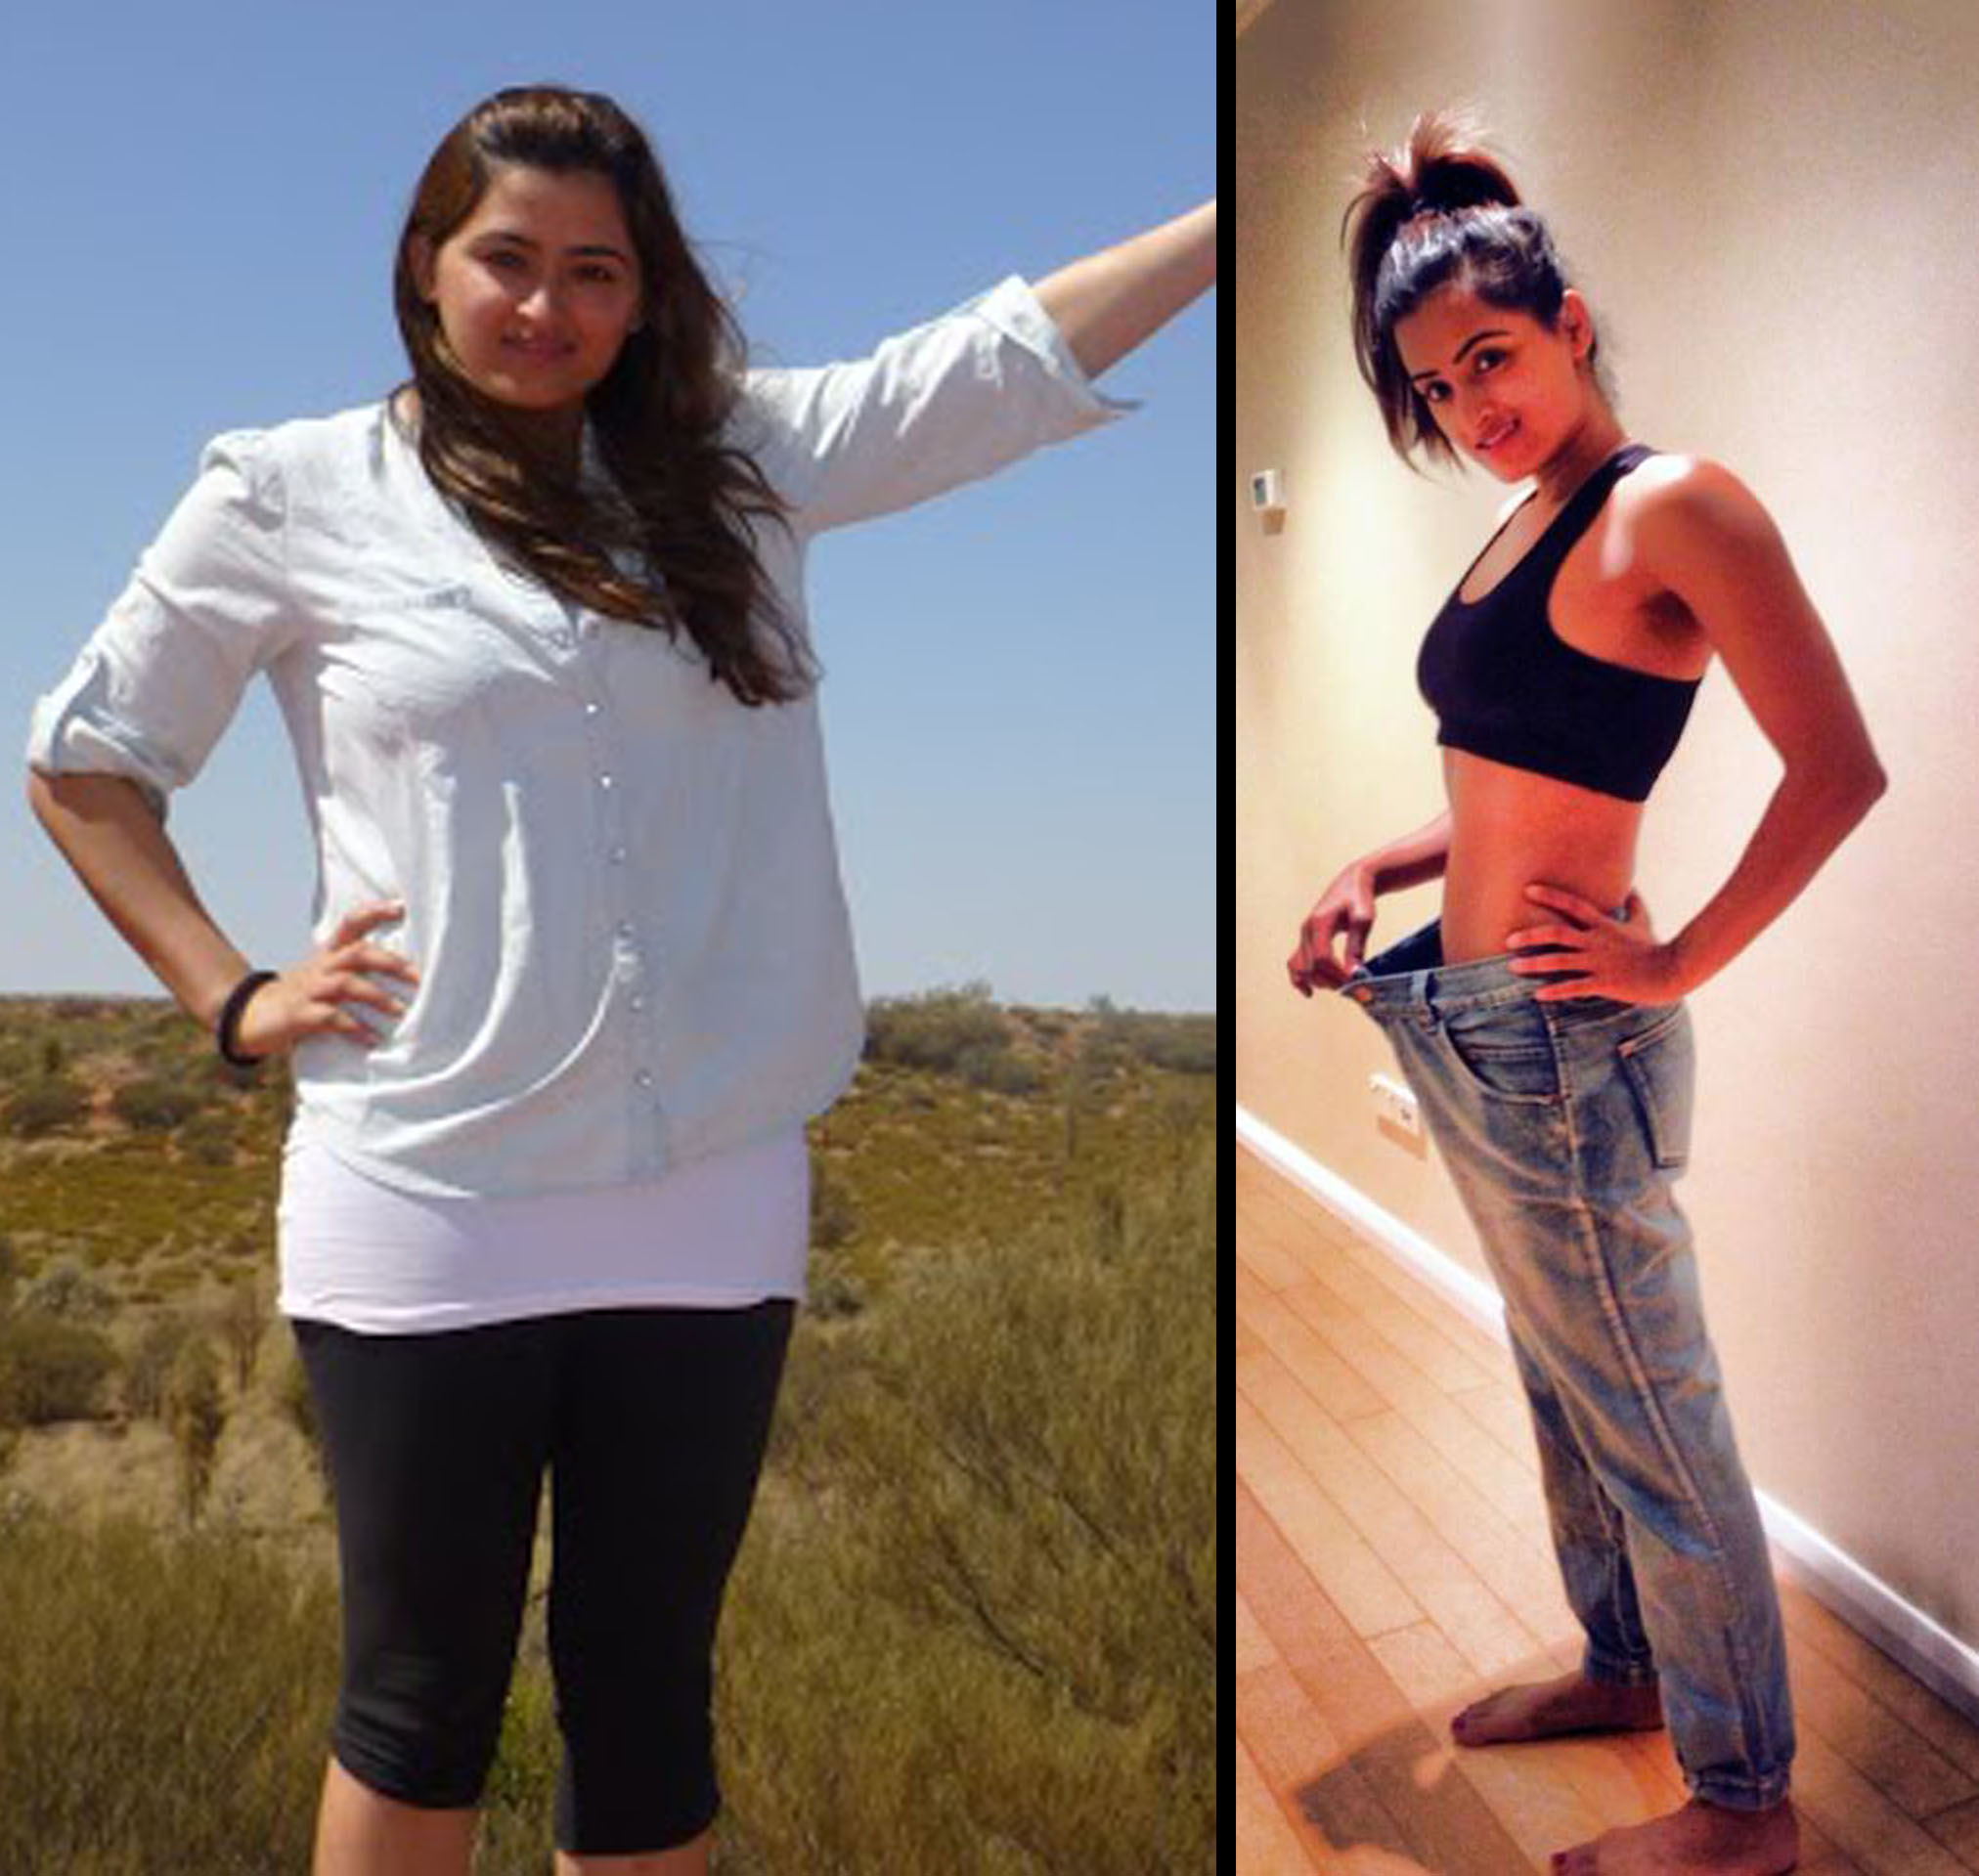 Crystal ended up losing 20kg with this program - GET HER PROGRAM